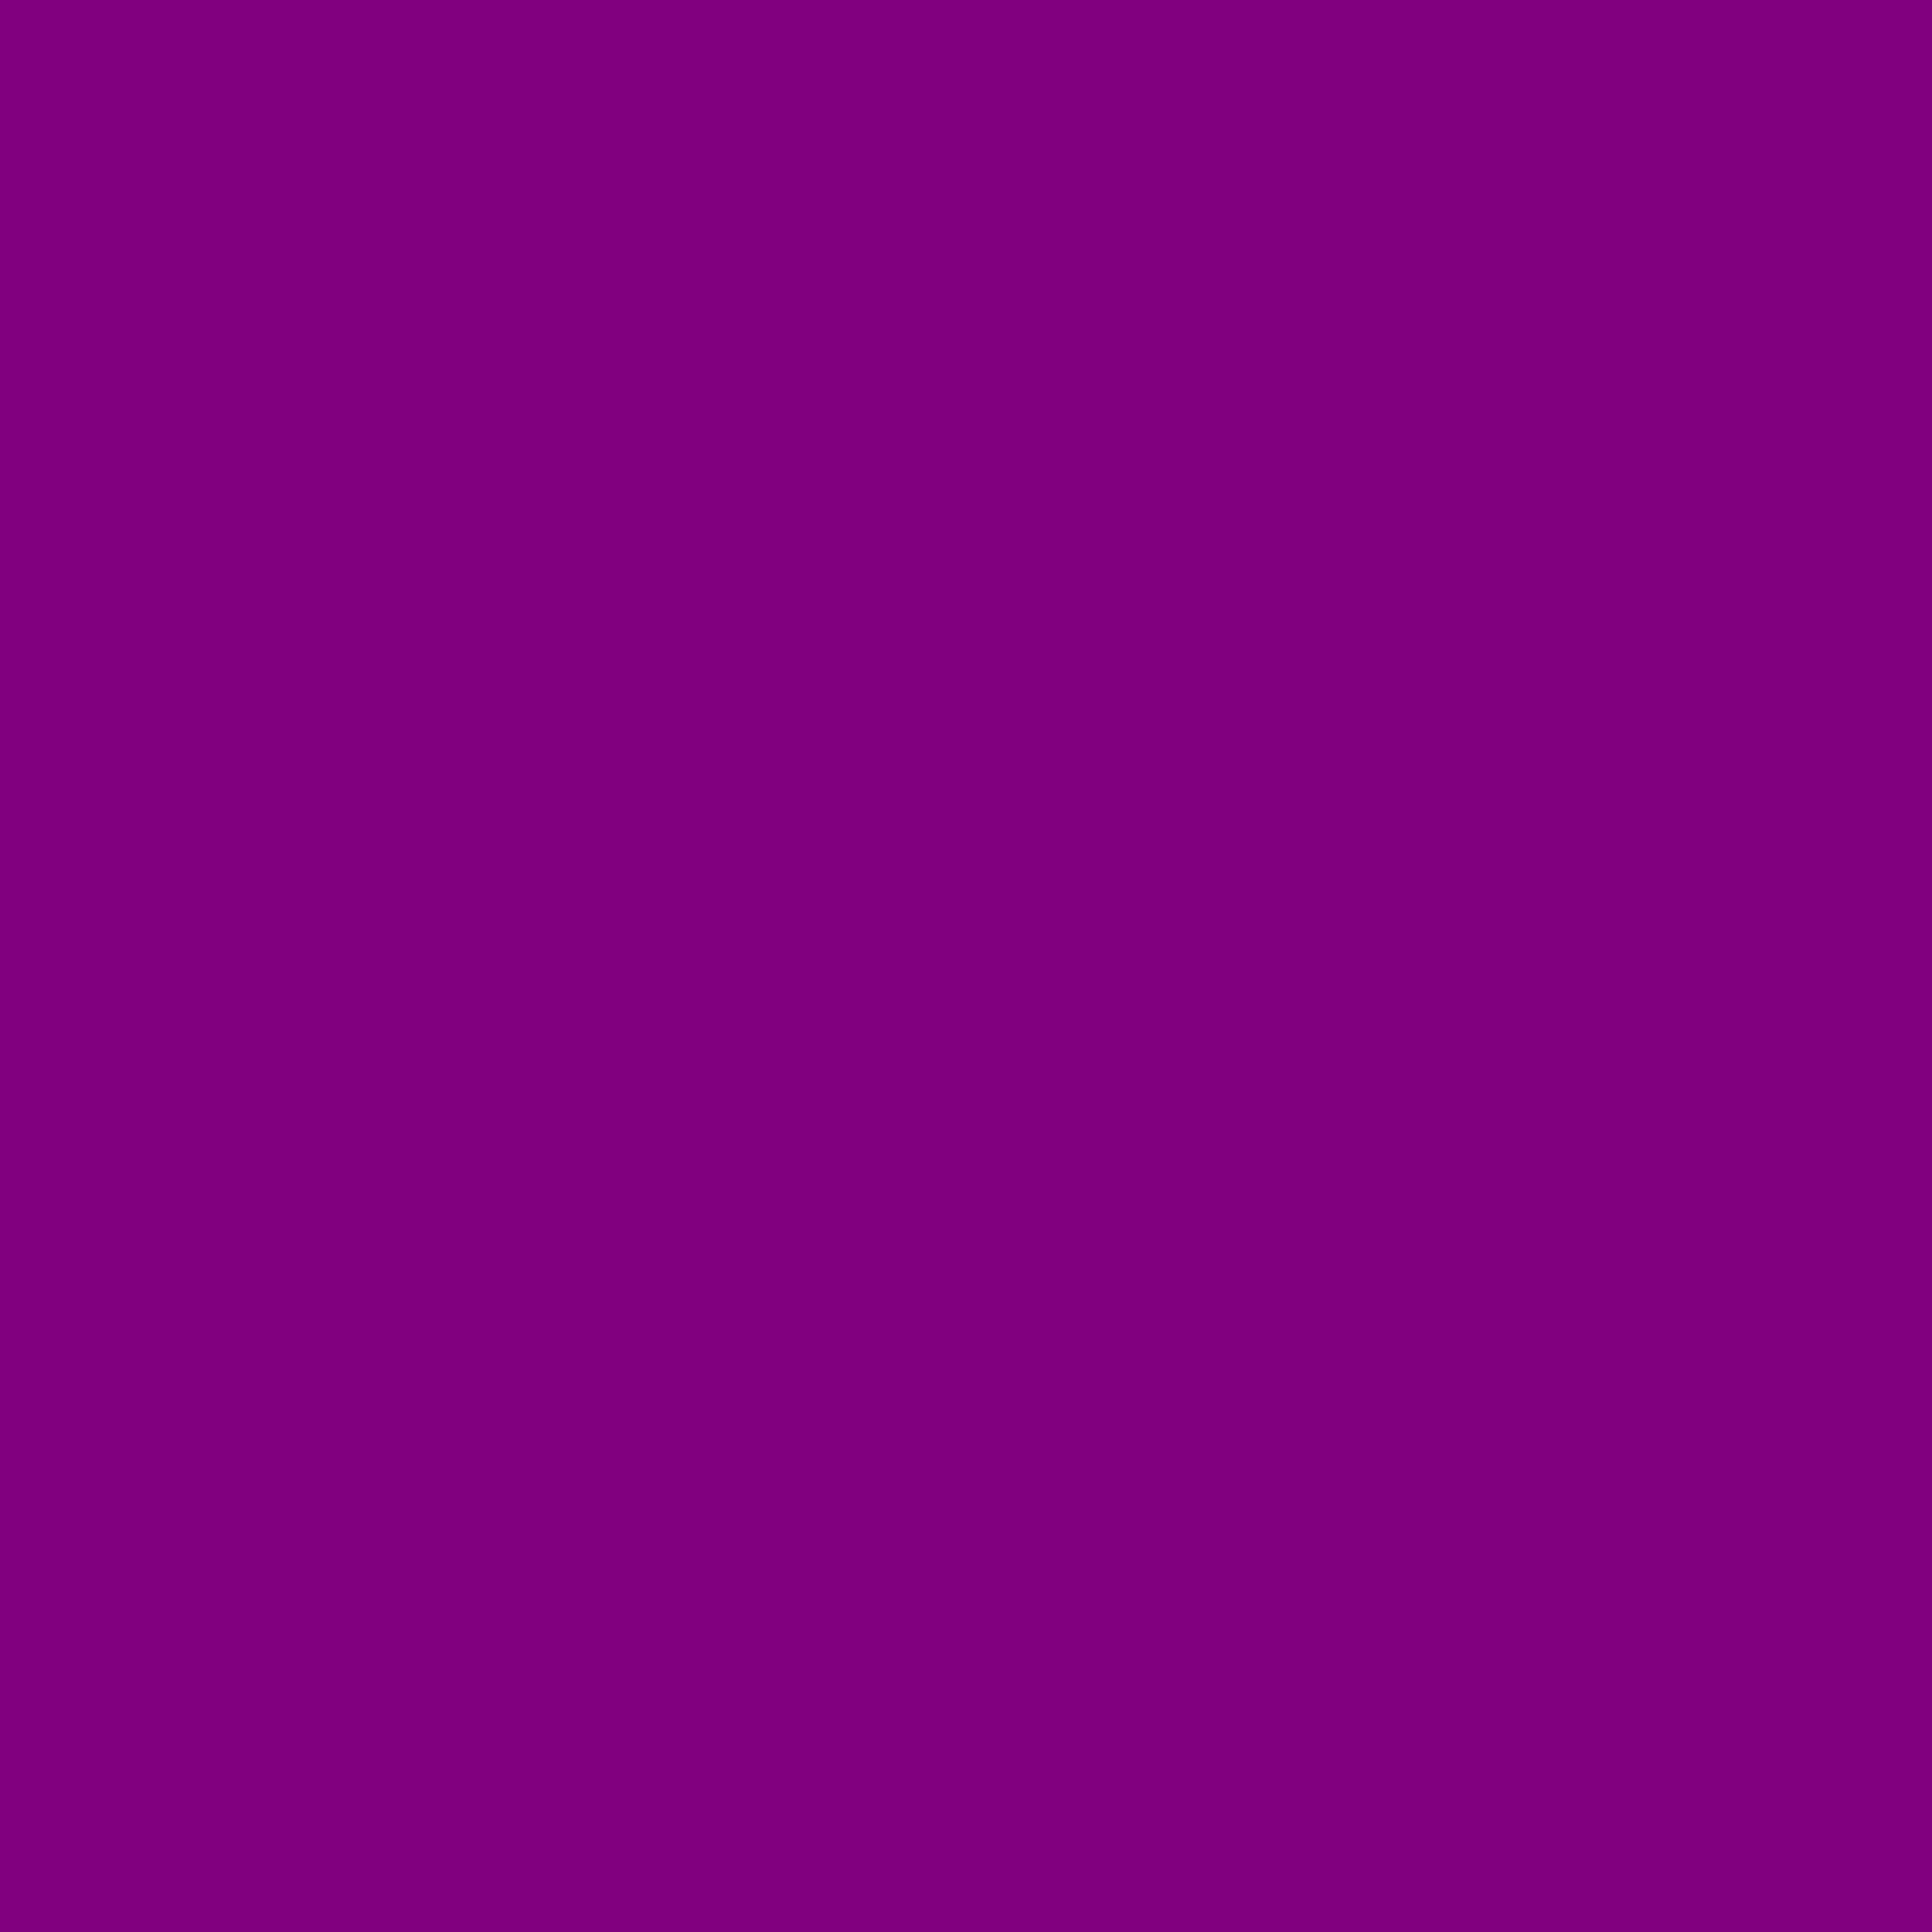 2732x2732 Purple Web Solid Color Background